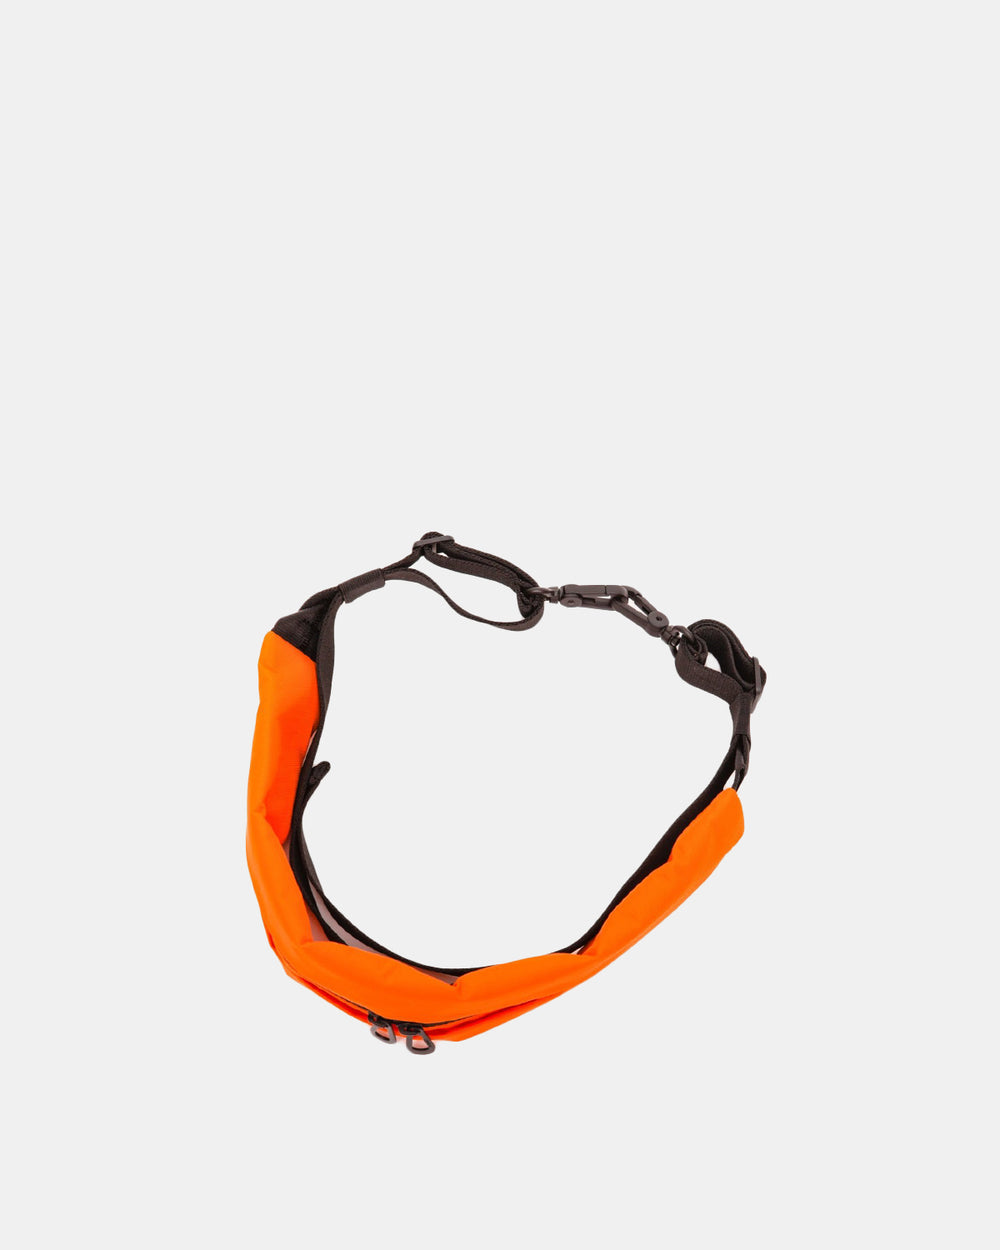 Cote & Ciel - Adda Strap Bag (Smooth Orange)